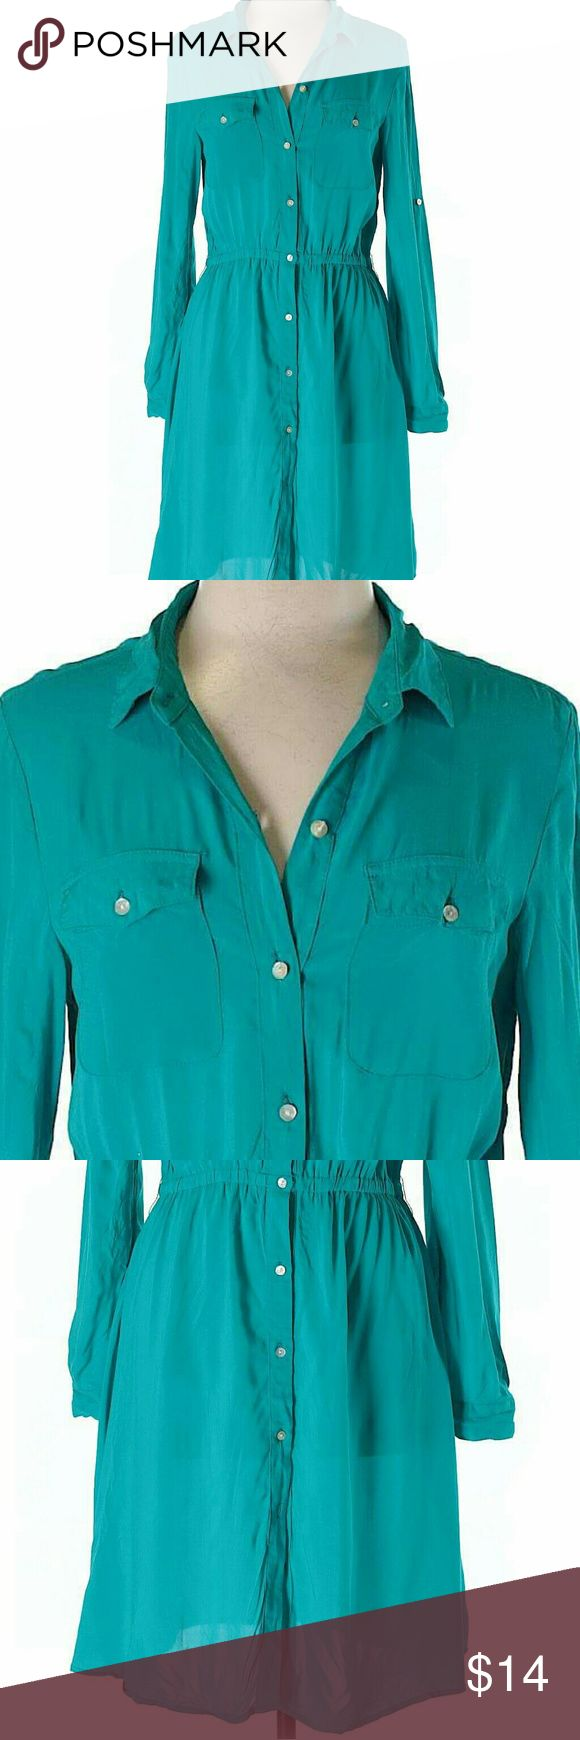 "Teal Shirt Style Dress Soft Rayon solid teal blue dress with buttons in the front all the way down. Elastic waist with long button cuffed sleeves. Two front Bossom PO keys and a V neck finish this casual and stylish look. 34"" chest and 38"" lenght. Brooke Leigh Dresses Long Sleeve"